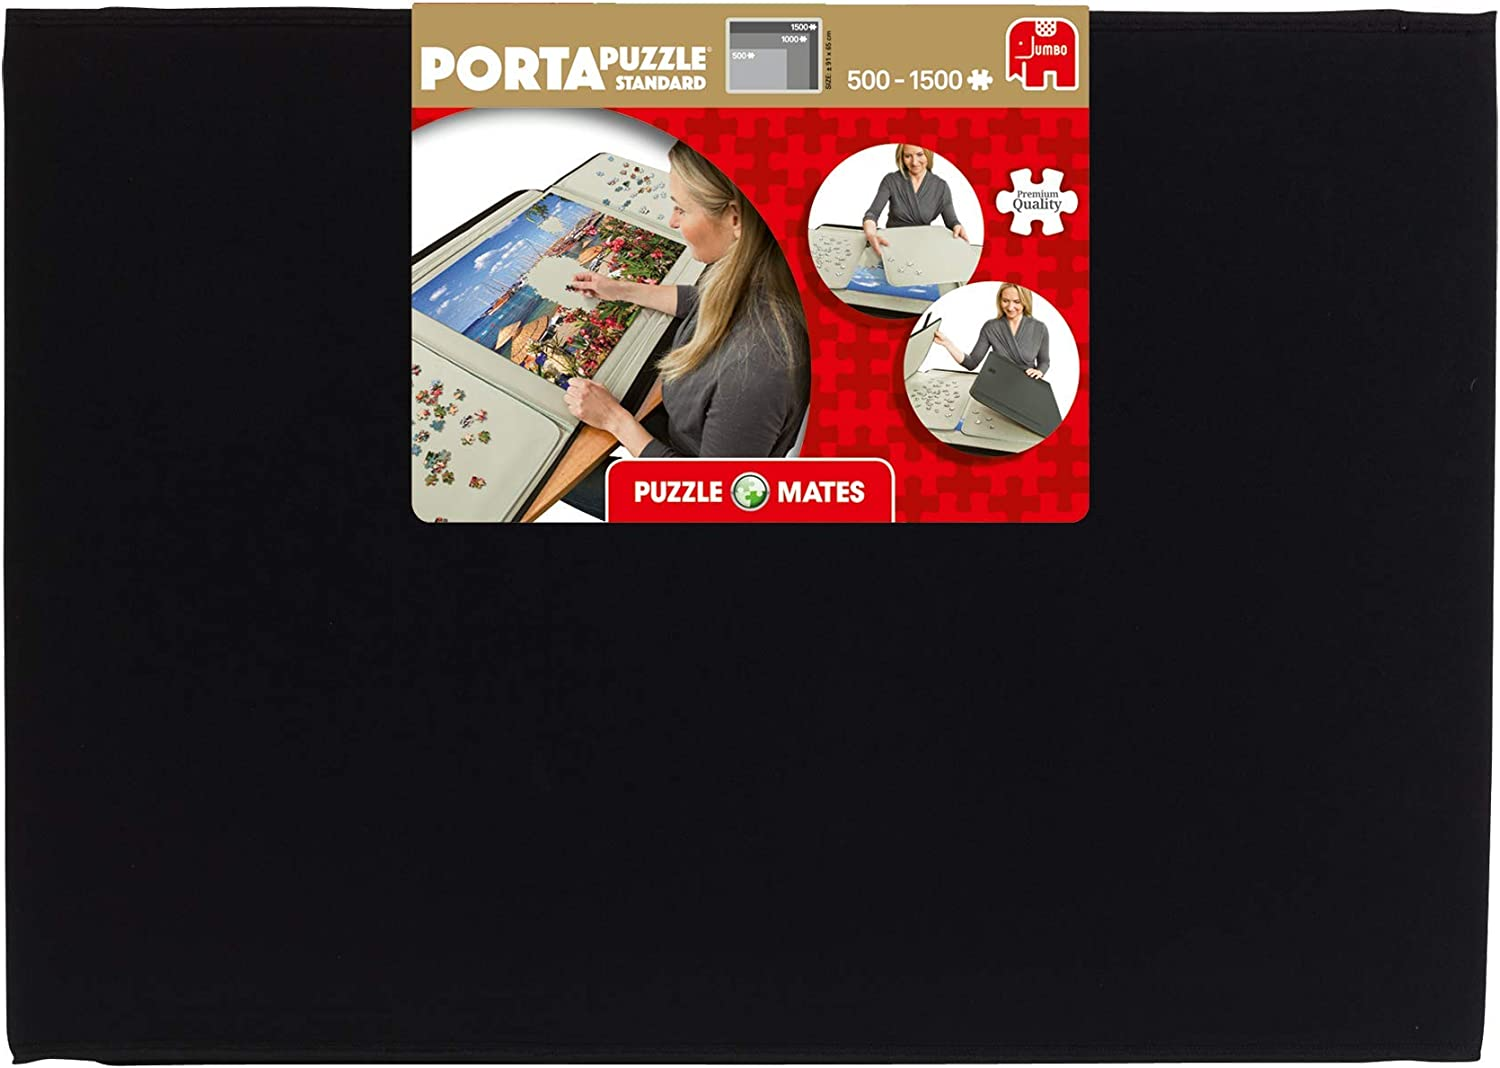 Puzzle Mates Portapuzzle Standard up to 1500 pce Puzzles